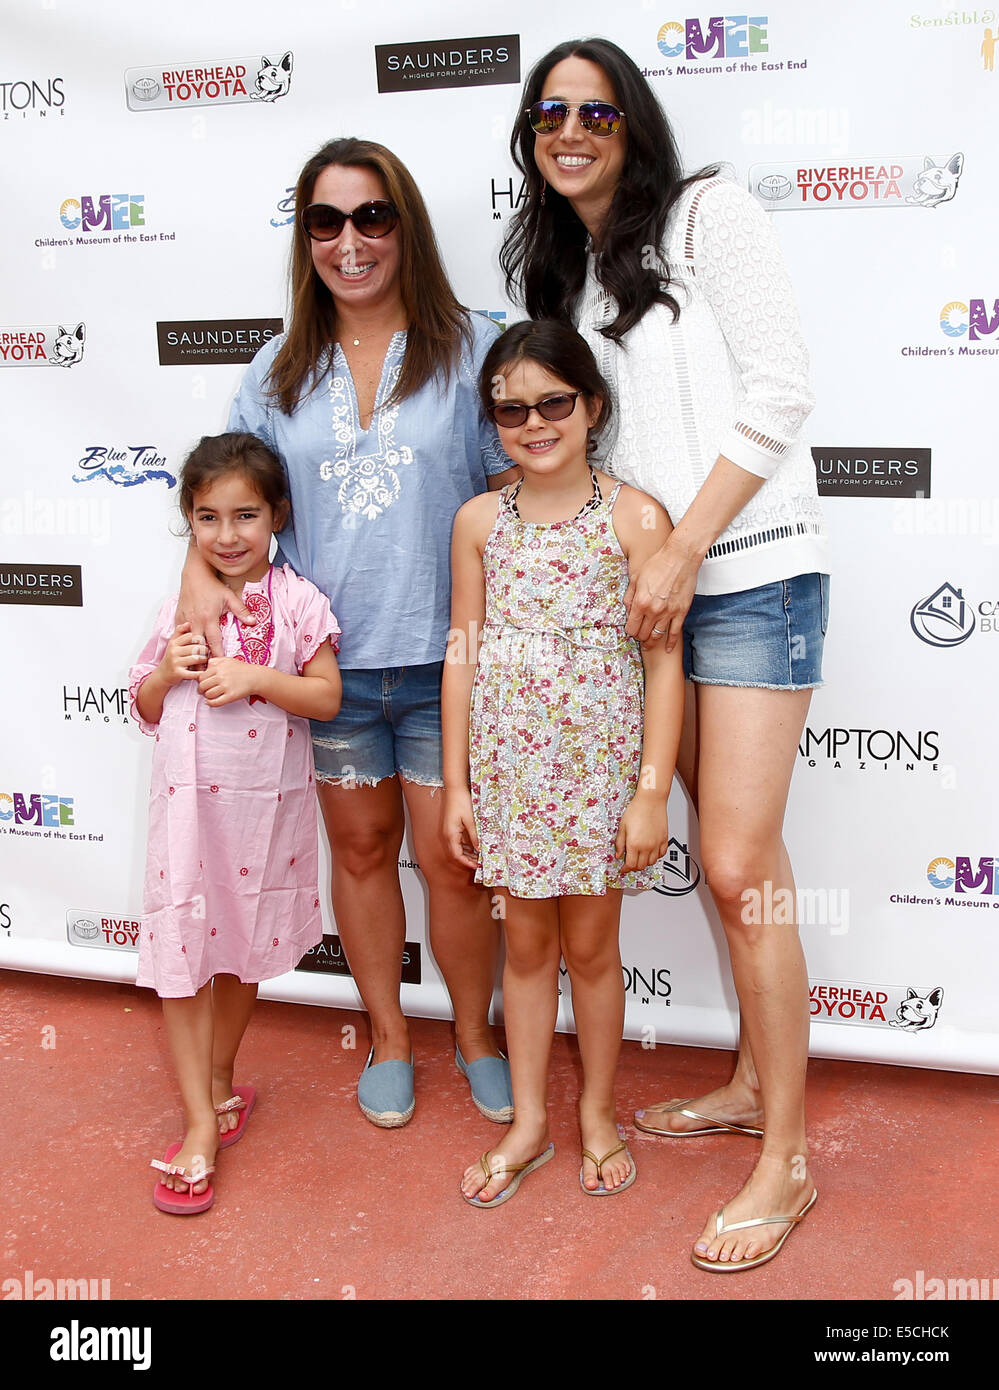 Editor-in-Chief of Hamptons magazine Samantha Yanks (L) and daughter Sadie with Amanda Poses (R) and daughter Addison. - Stock Image